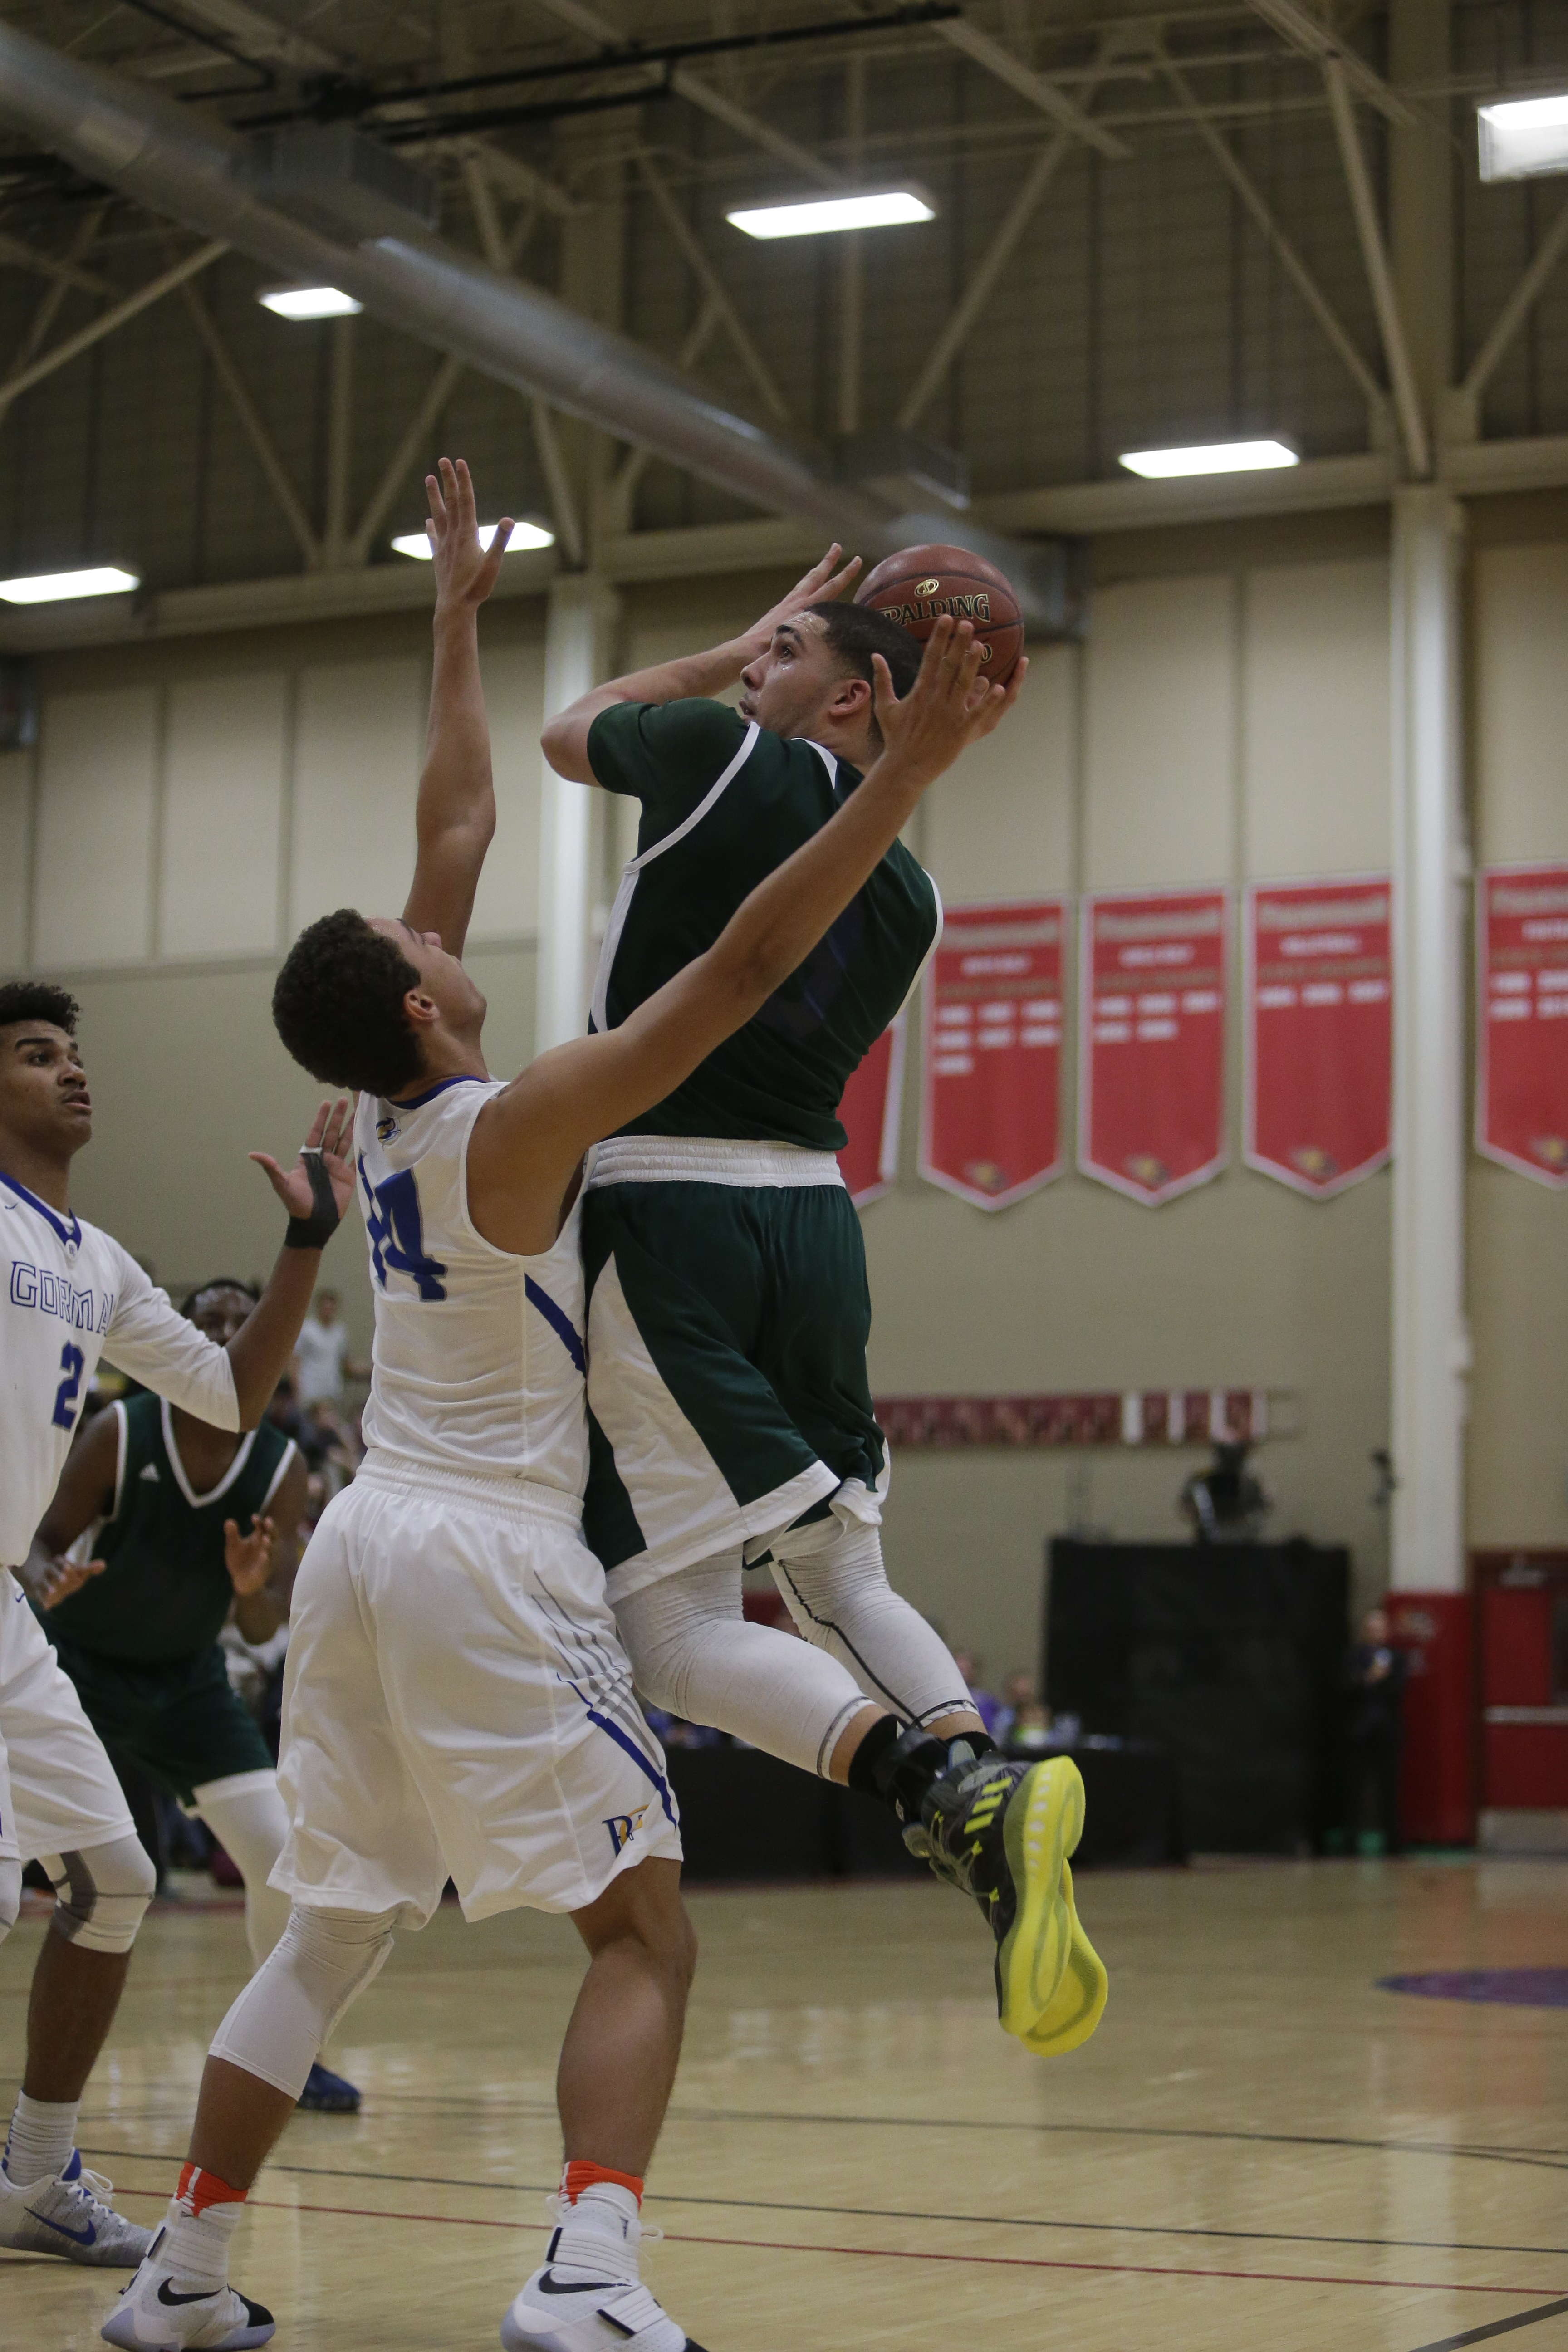 Chino Hills' LiAngelo Ball shoots (Photo: Alex Carlson, Position Sports)